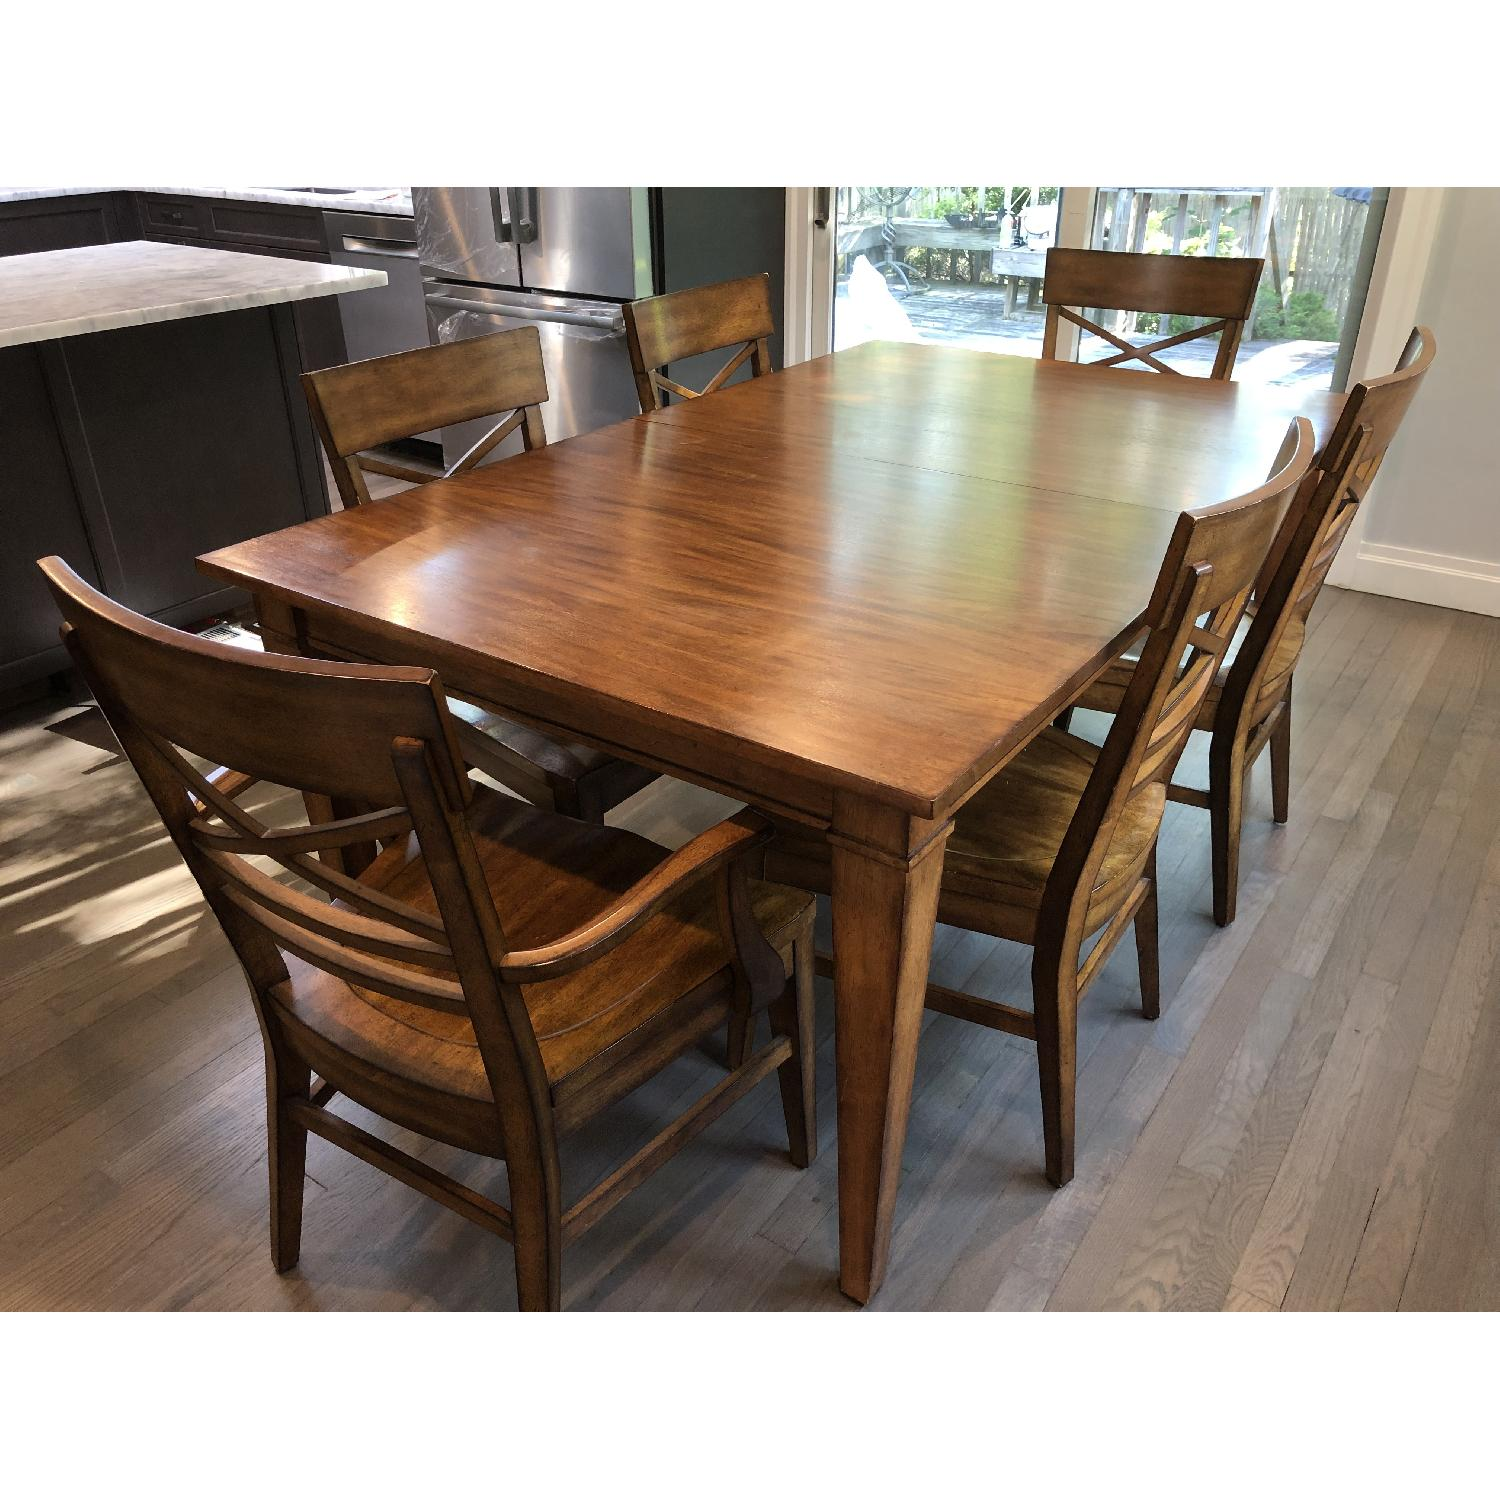 Ethan Allen Extension Dining Table w/ 6 Chairs - image-0